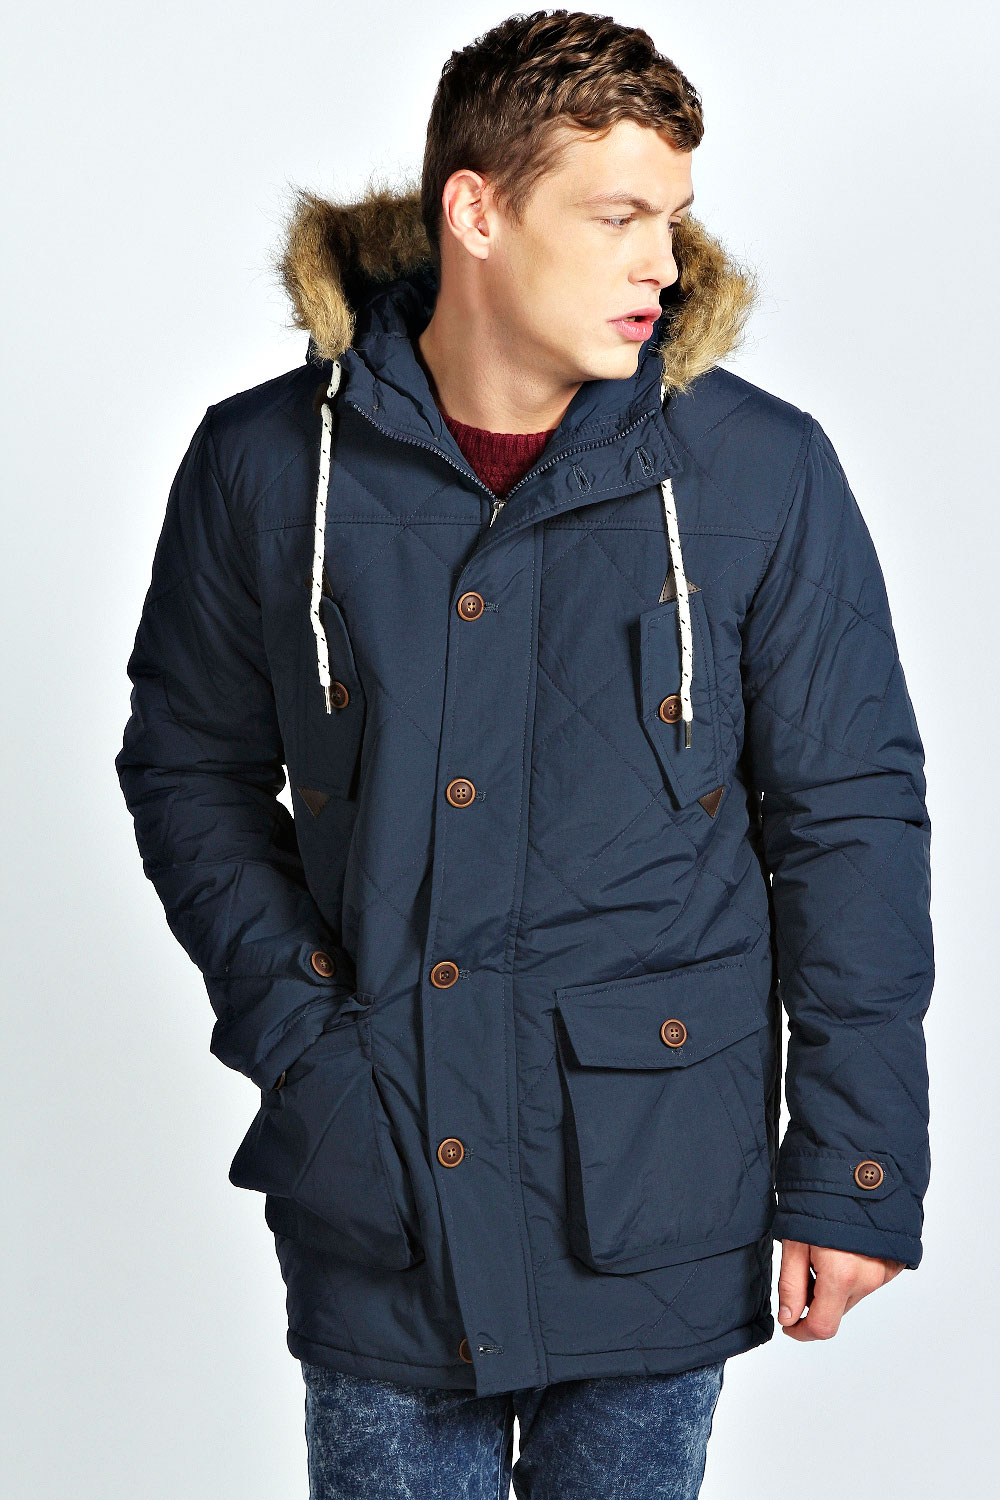 Mens Navy Parka Coat - Sm Coats